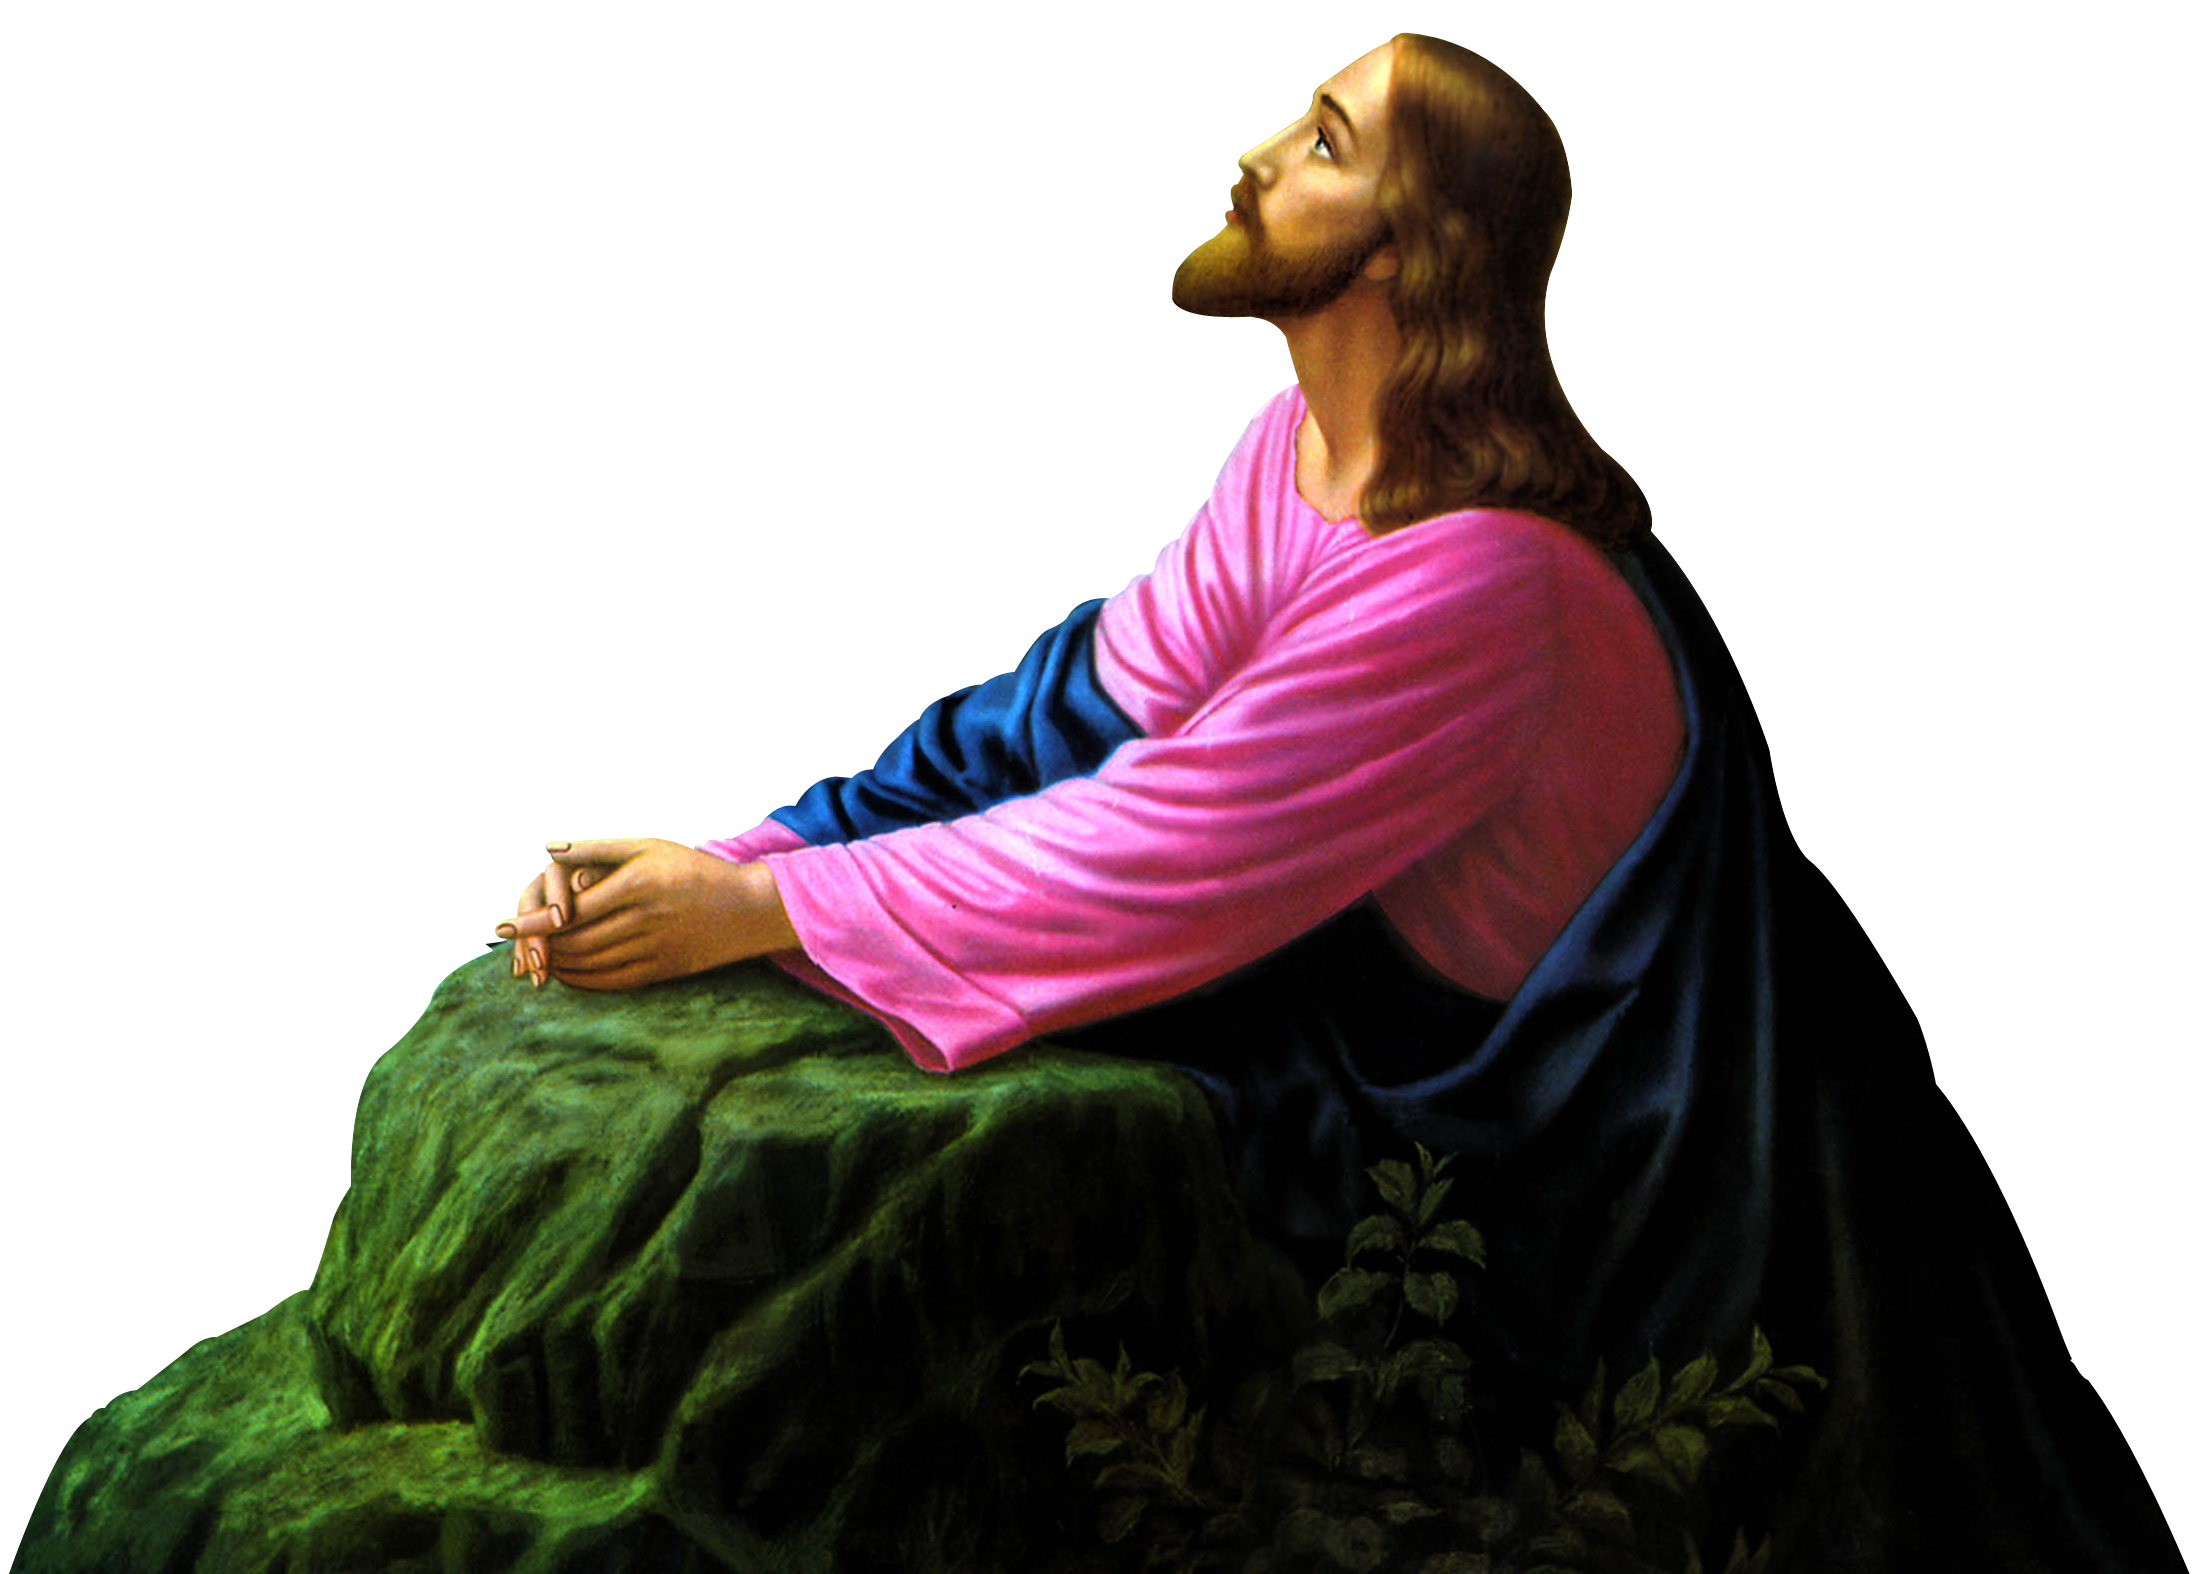 Christ Jesus Worship Messiah Christianity Free Download PNG HD PNG Image